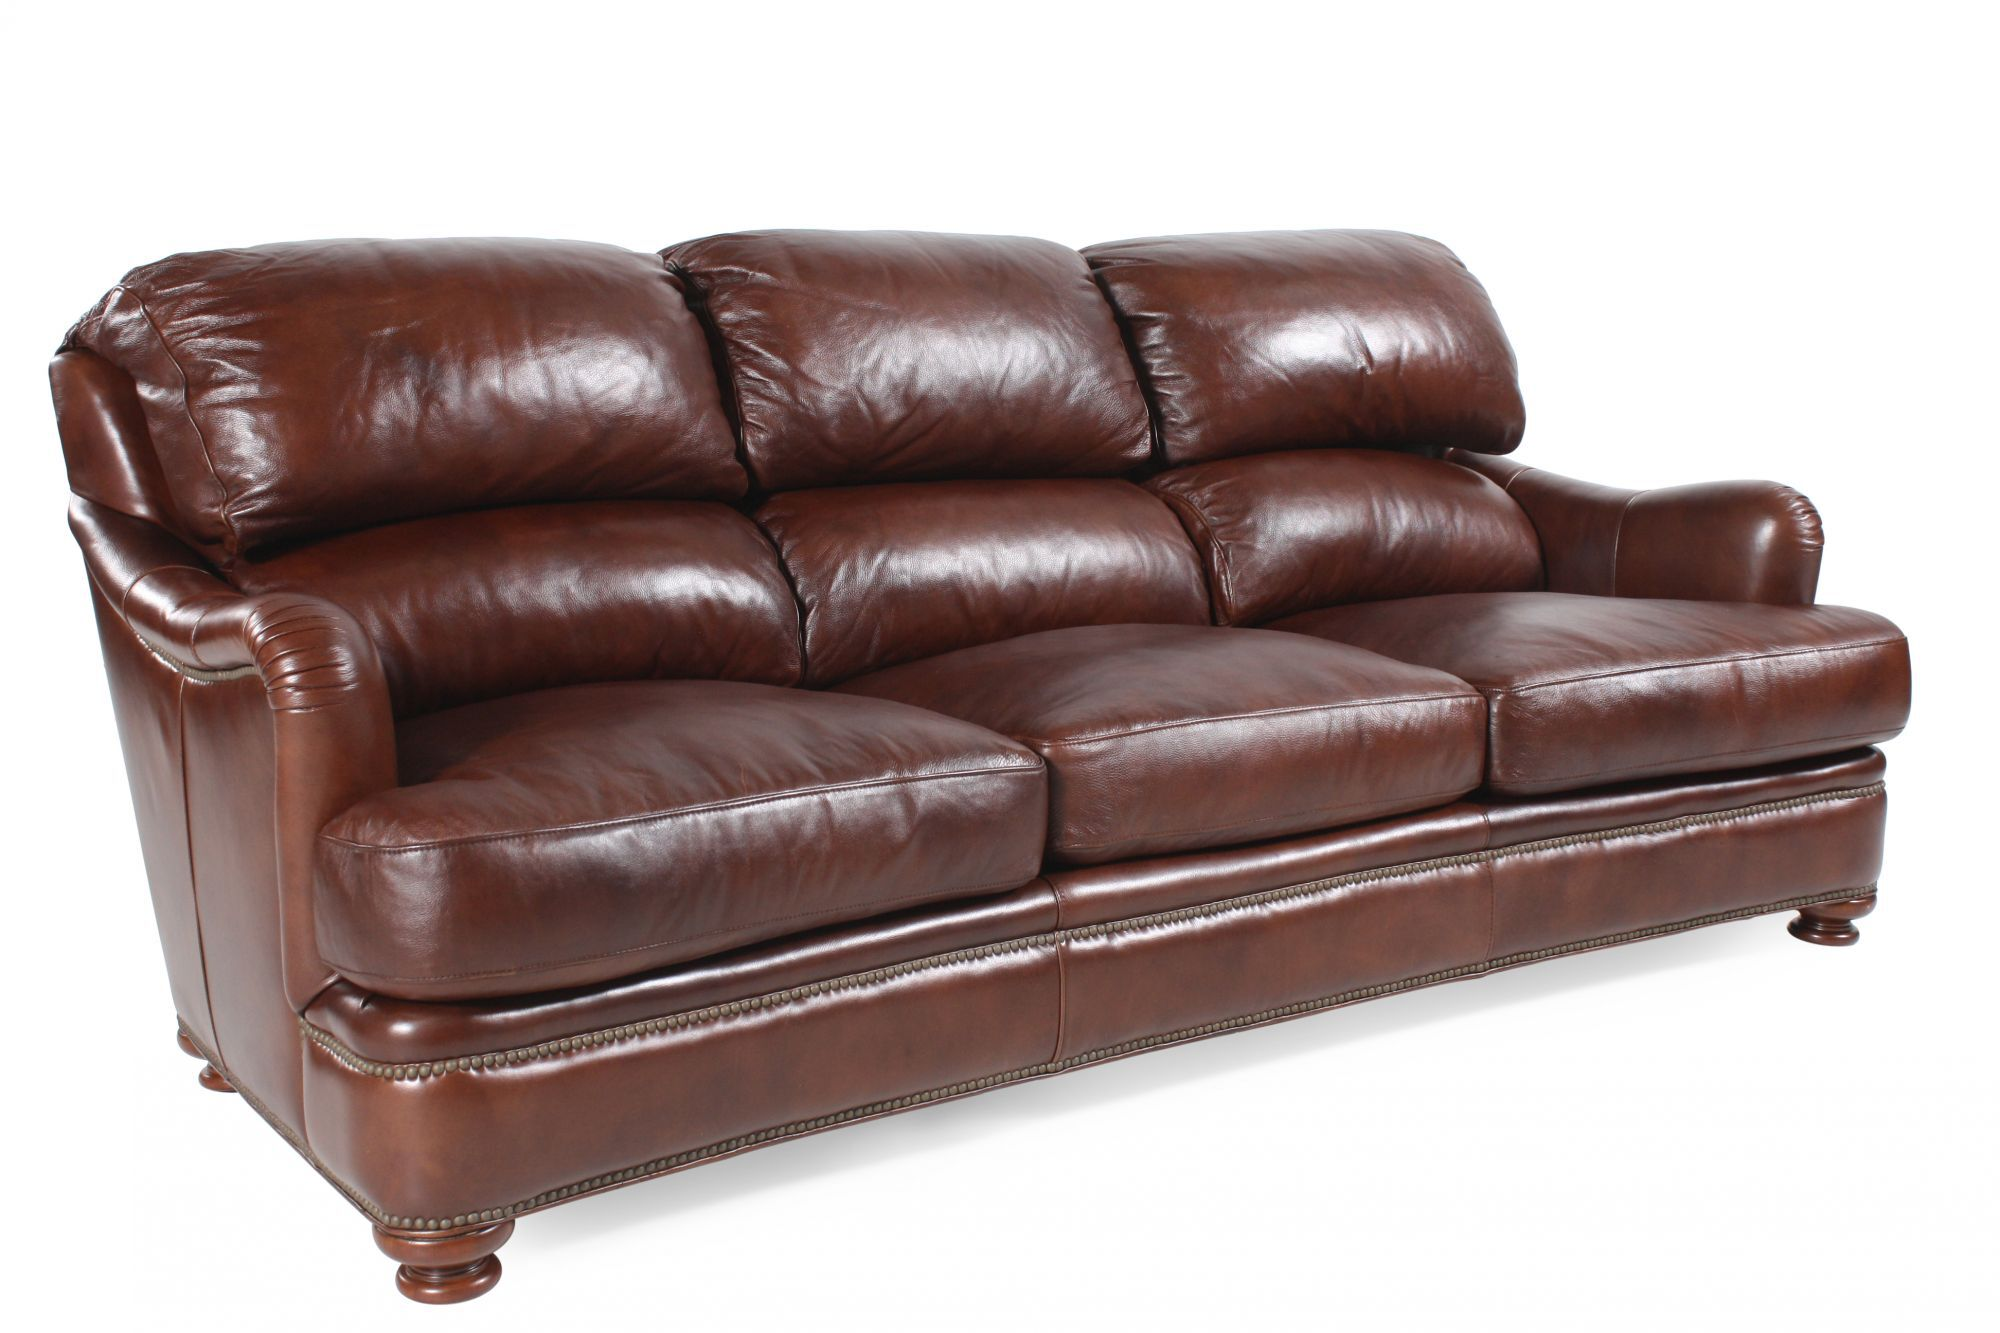 Nailhead Accented Leather Sofa In Saddle Brown